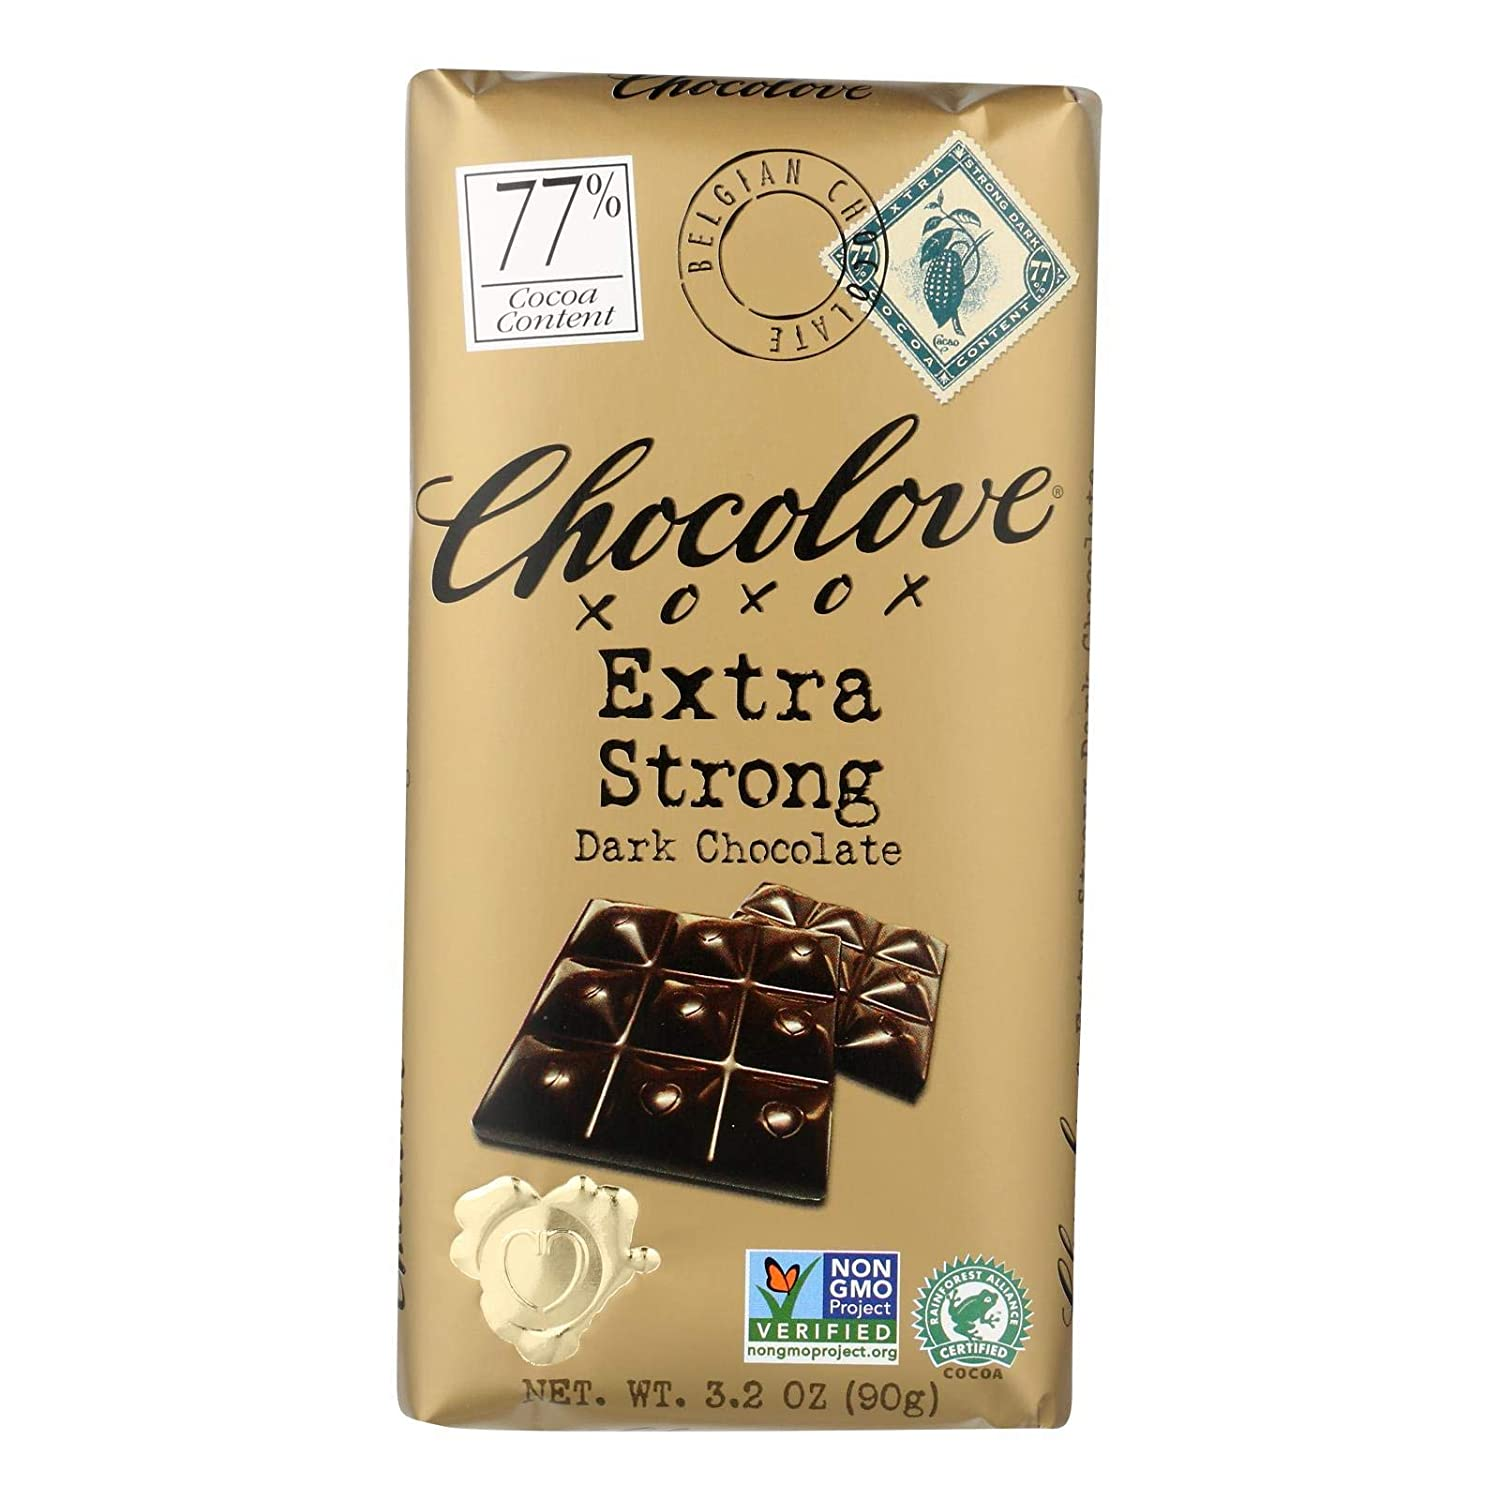 Chocolove Chocolate Bar 77% Bombing new work Extra Ounce Pack Dark 3.2 Max 44% OFF Strong